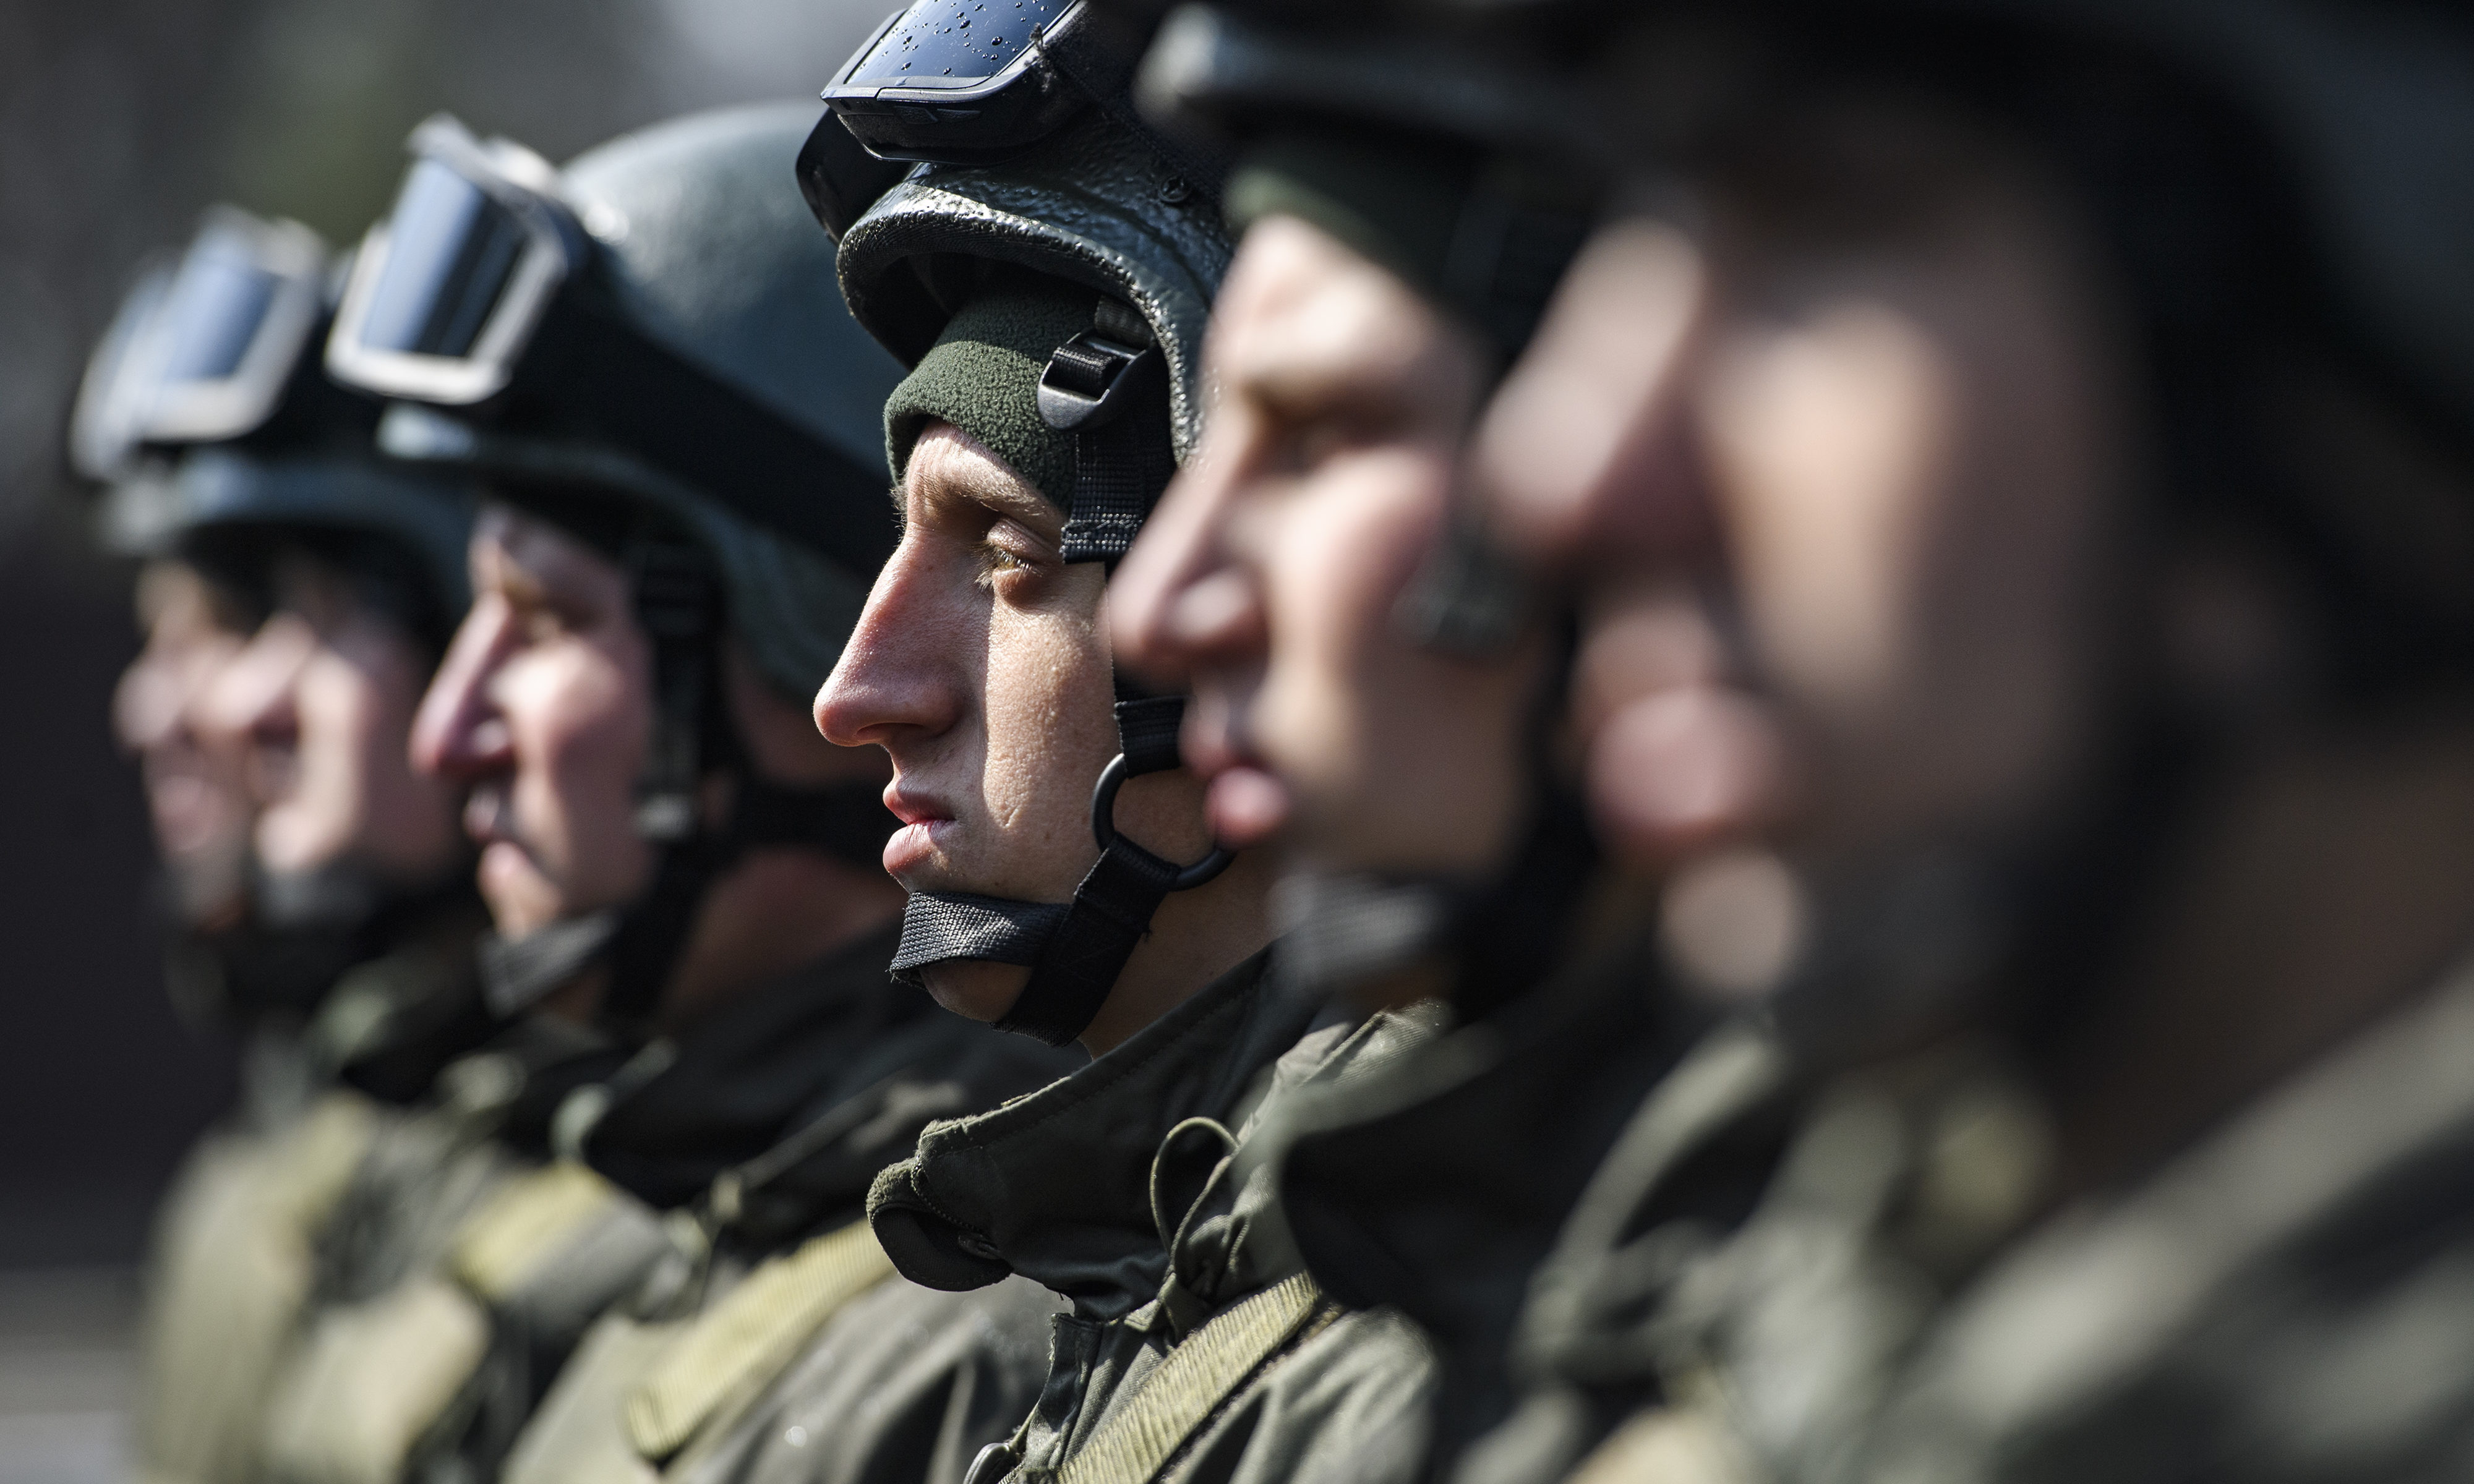 Servicemen during The celebrations on the occasion of the 5th anniversary of the National Guard of Ukraine, Kyiv, Ukraine.